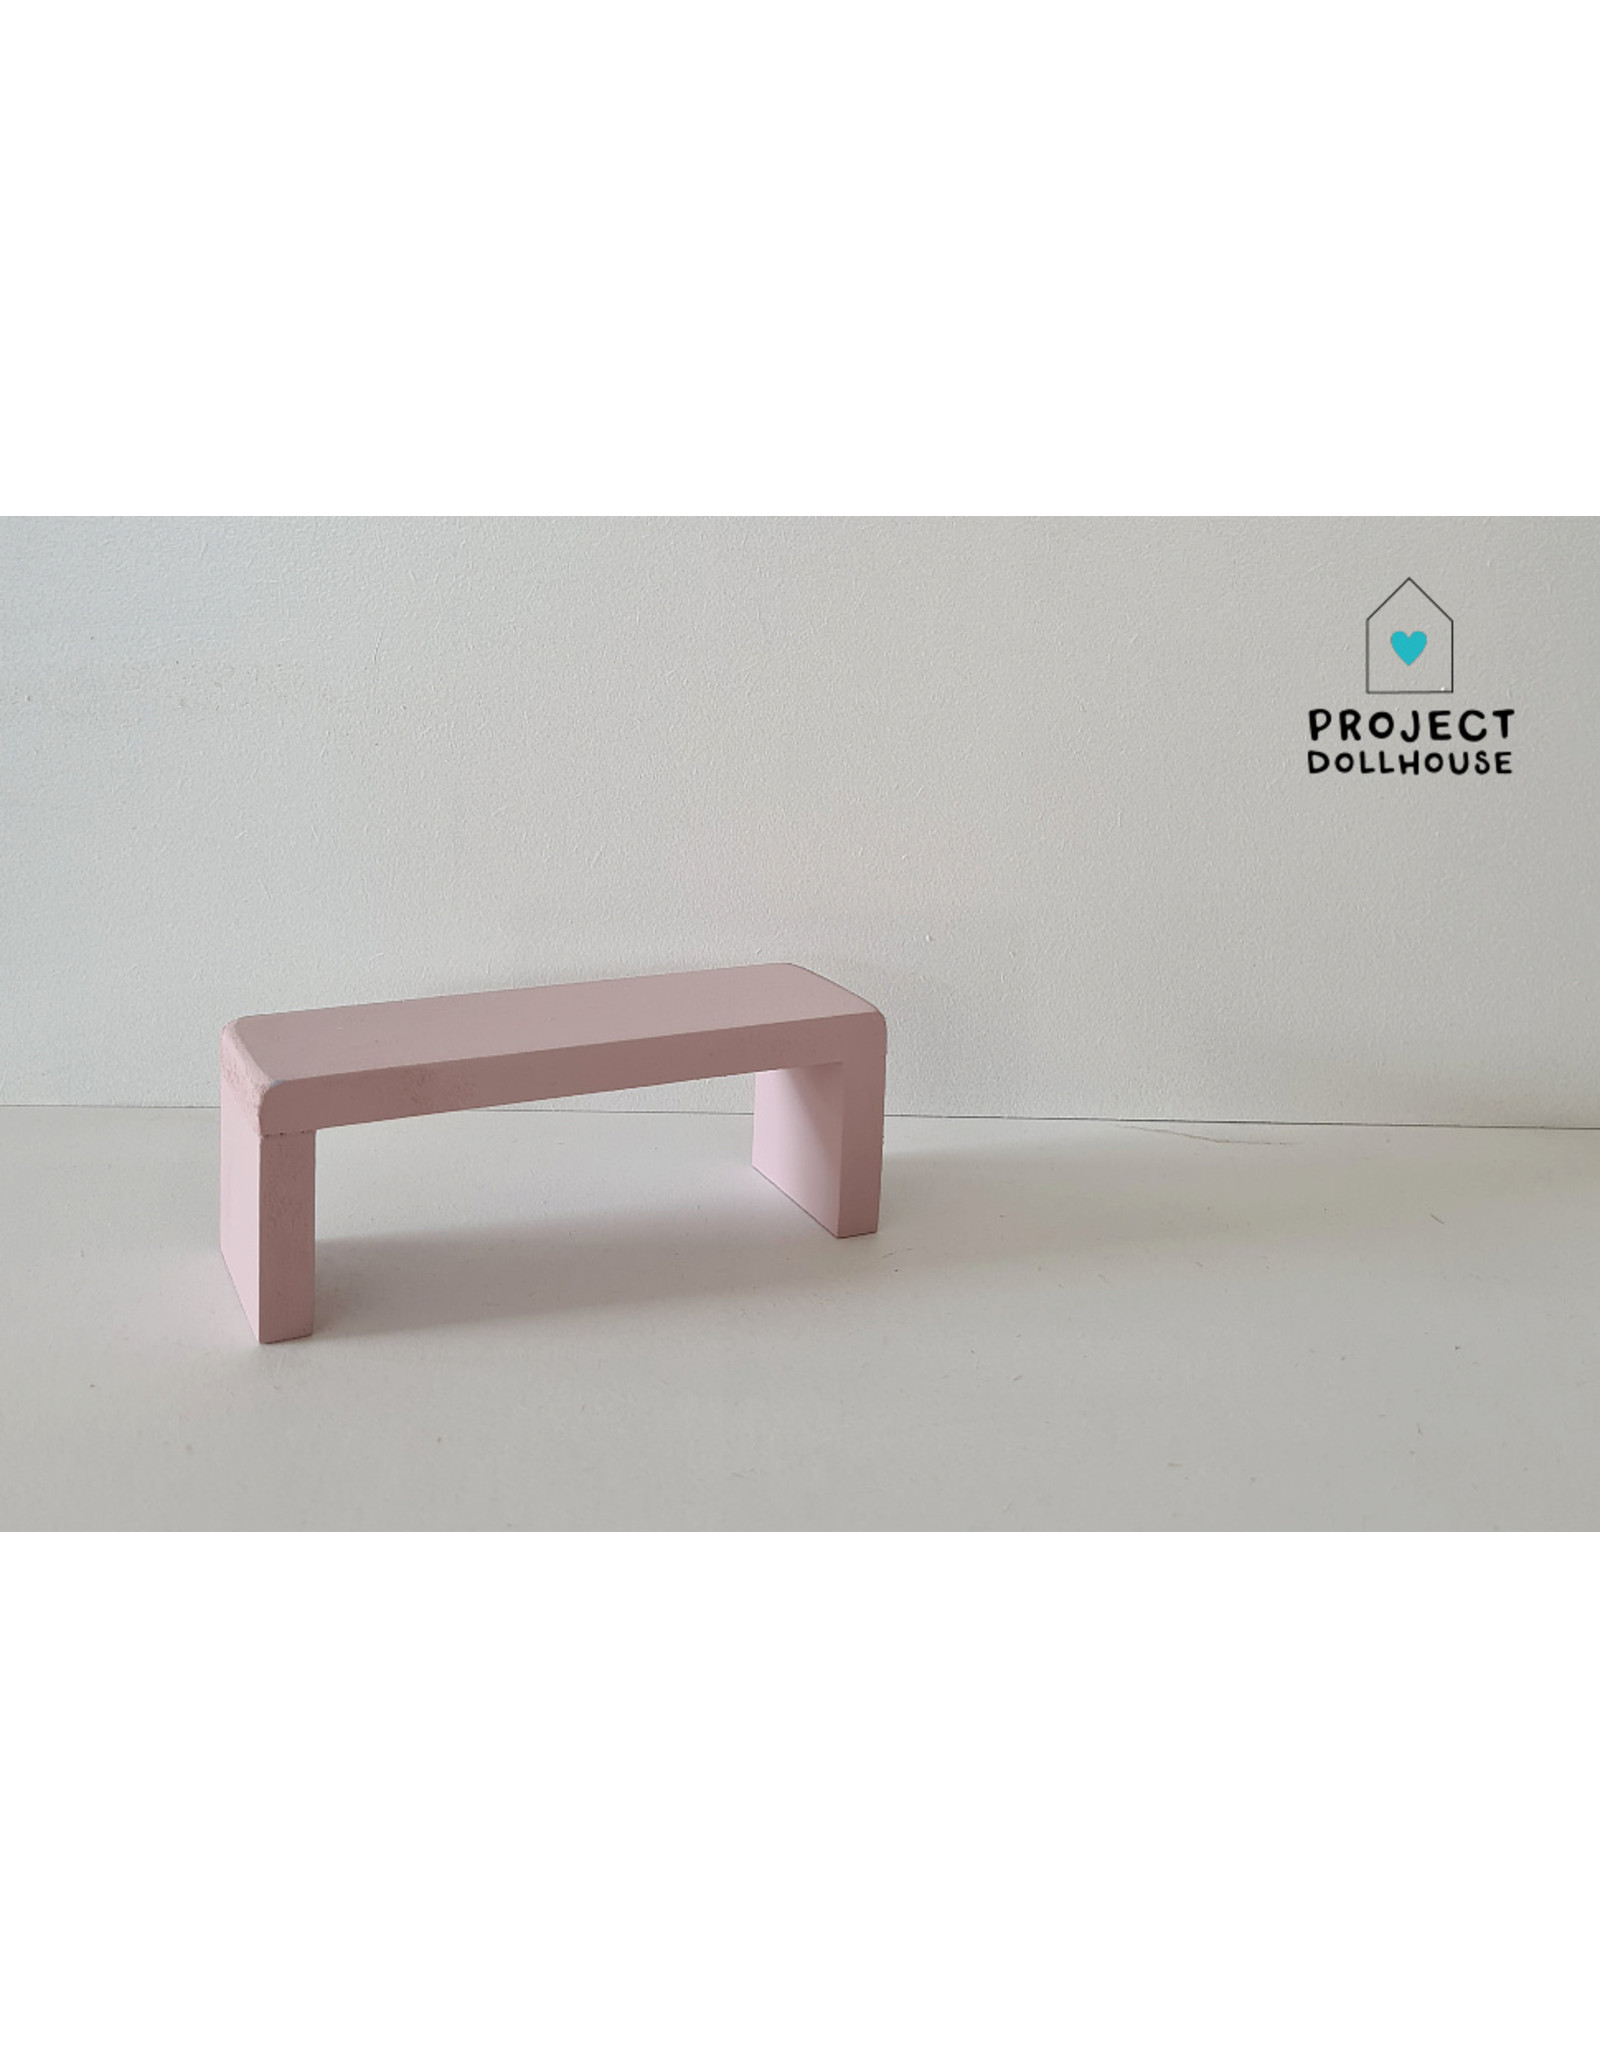 Project Dollhouse Side Table for Maileg Bed - Precious Pink